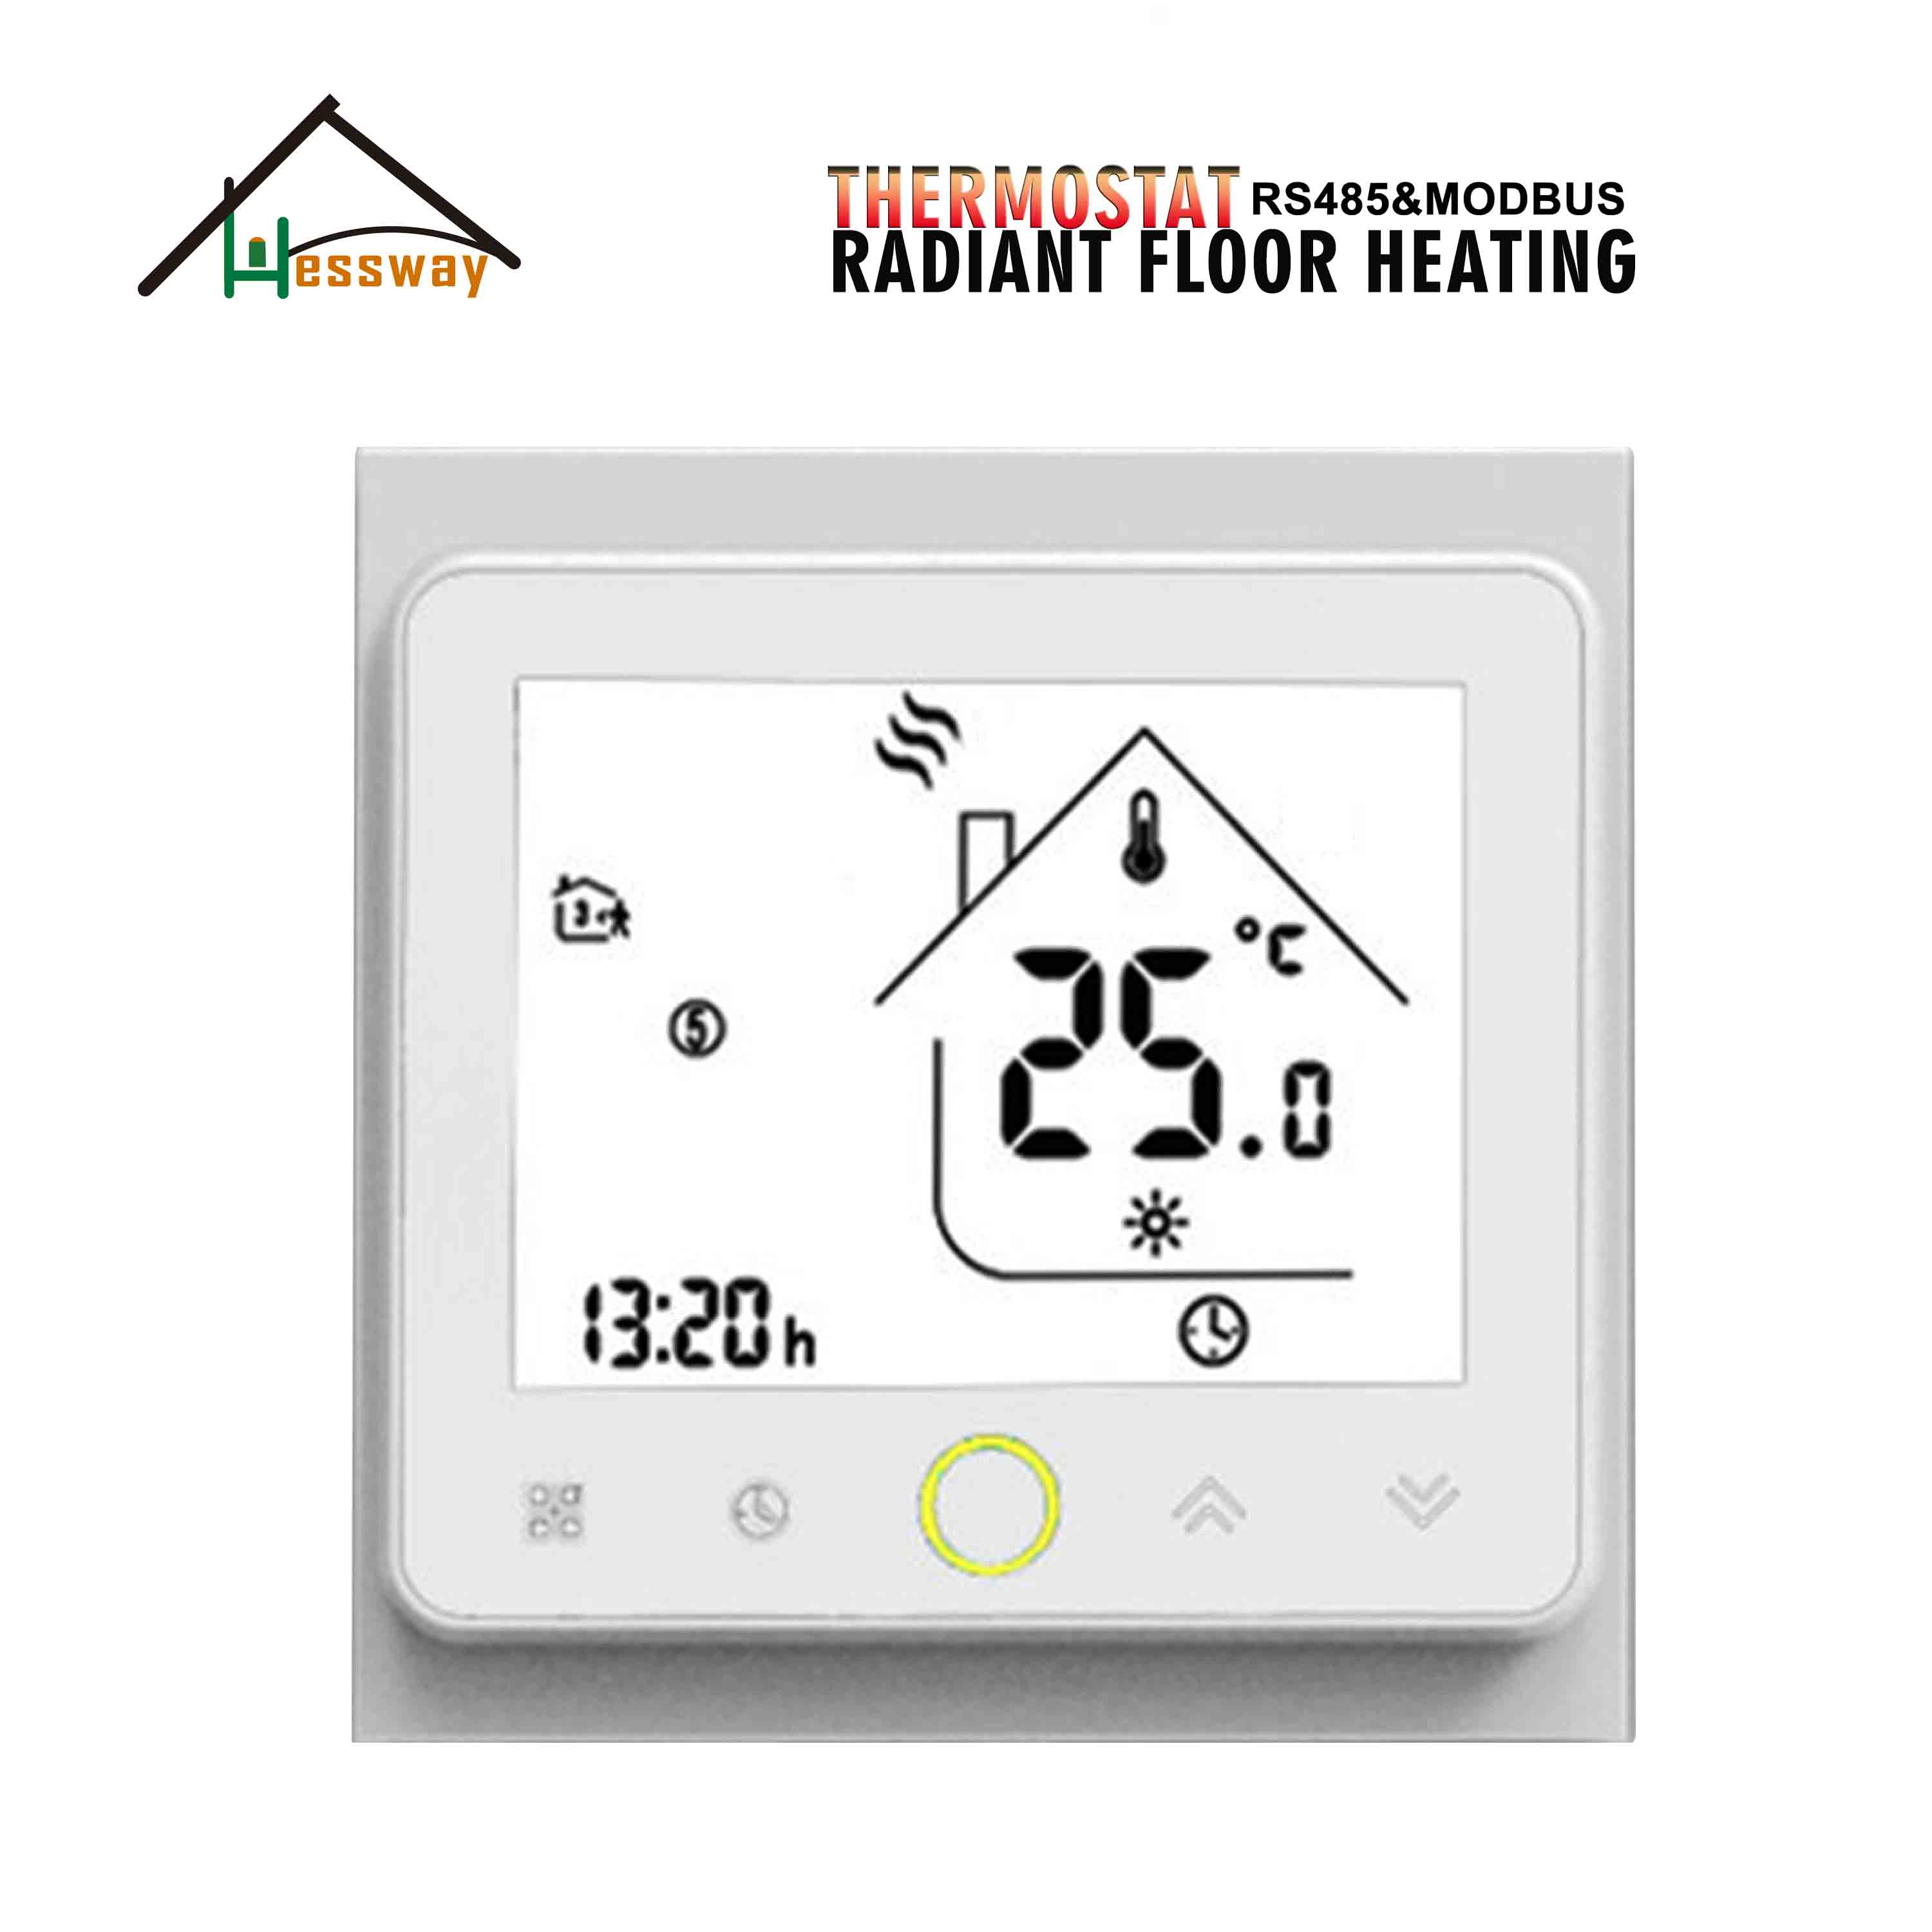 HESSWAY NC/NO Electric Actuator Control RS485&MODBUS THERMOSTAT With Radiant Floor Heating